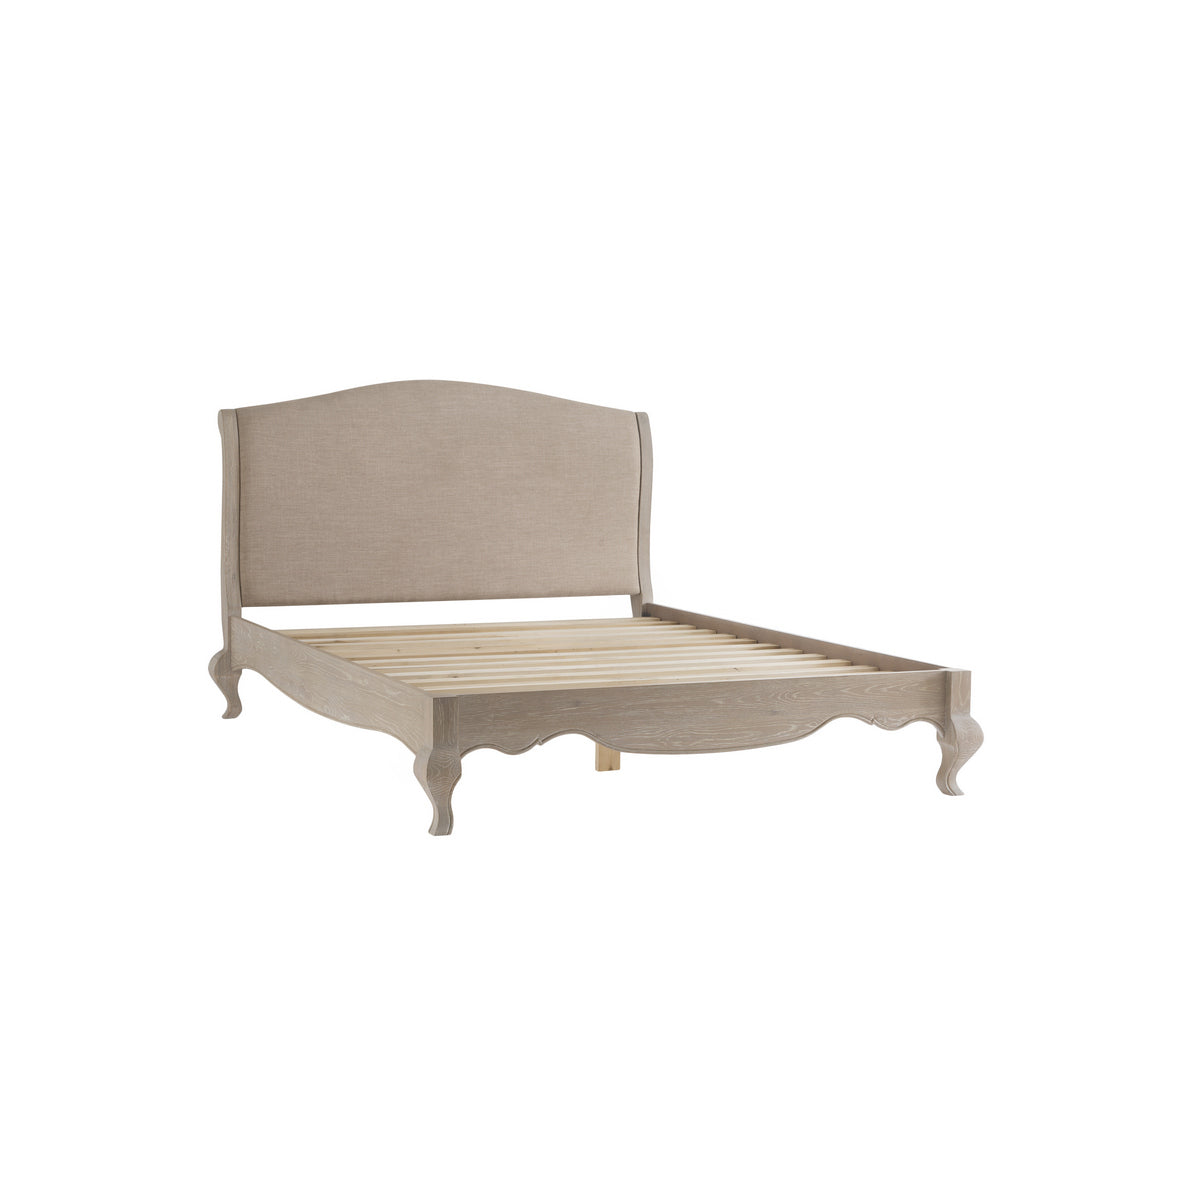 Phenomenal Lyon 5 Low End Bed Andrewgaddart Wooden Chair Designs For Living Room Andrewgaddartcom